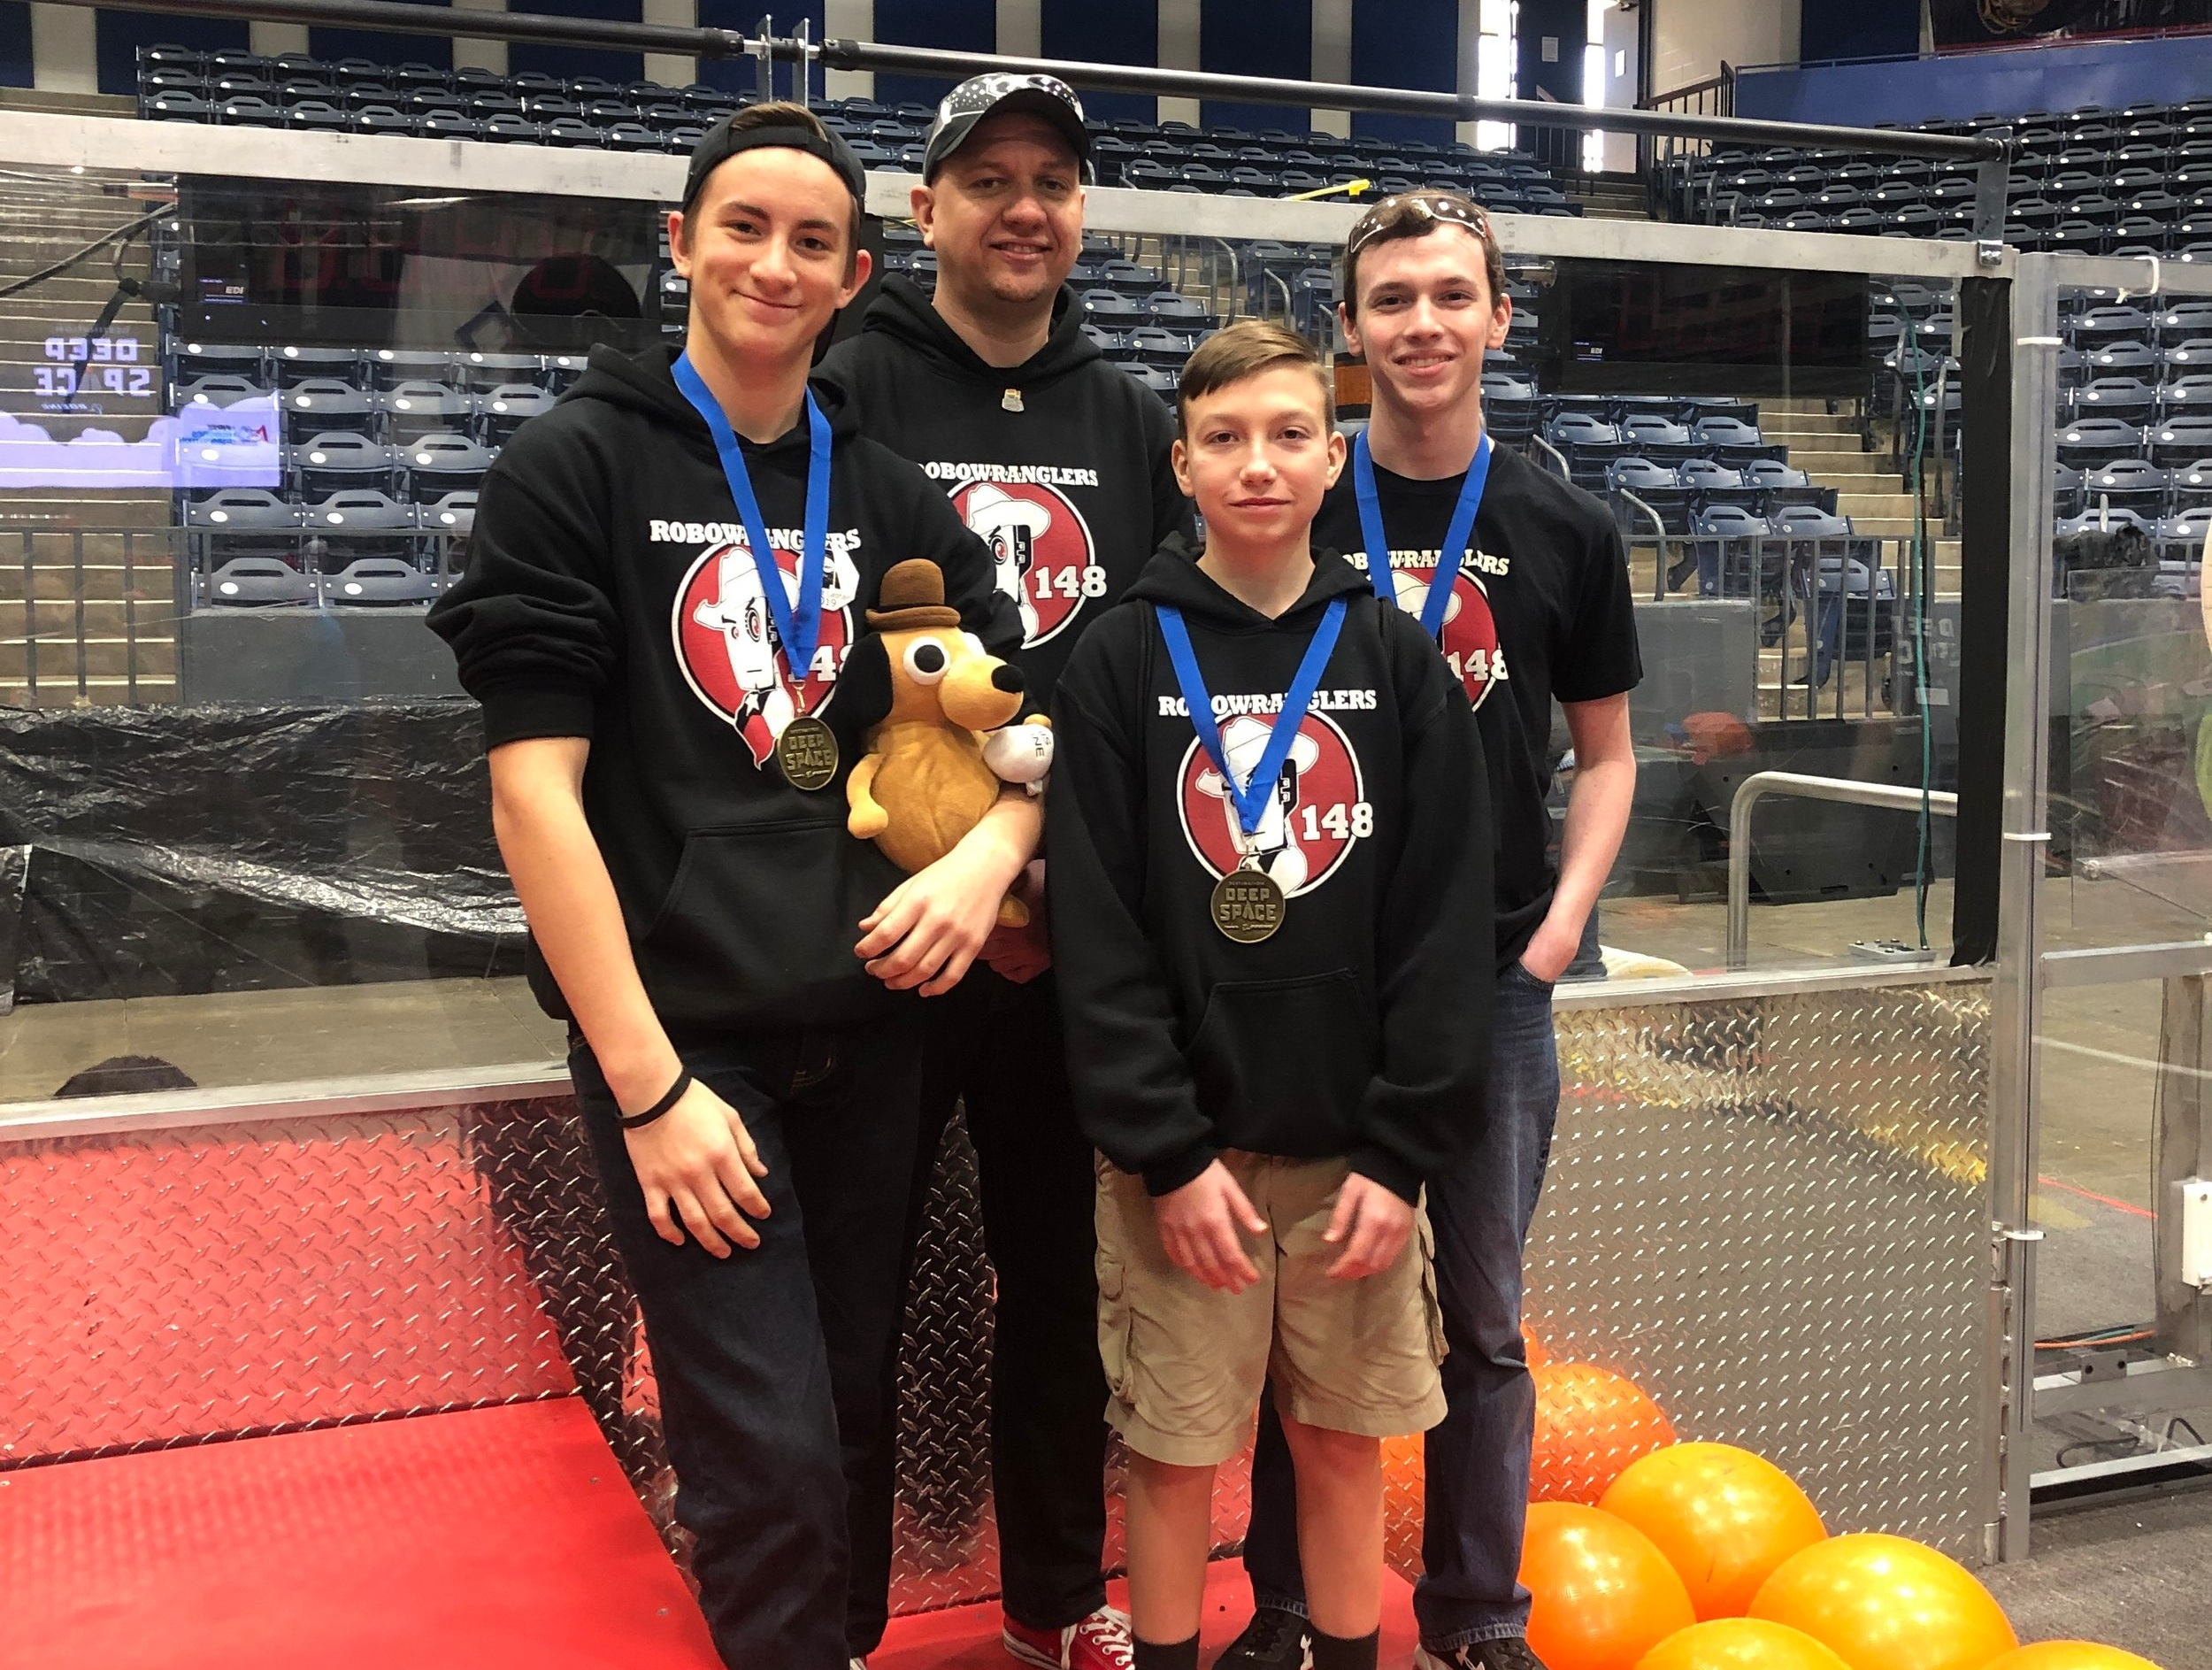 2019 Drive team: Two Robowrangler rookies, one Einstein veteran driving his first official event (adequate job), and one coach who is so forgetful he might as well be a rookie…  This is Fine.